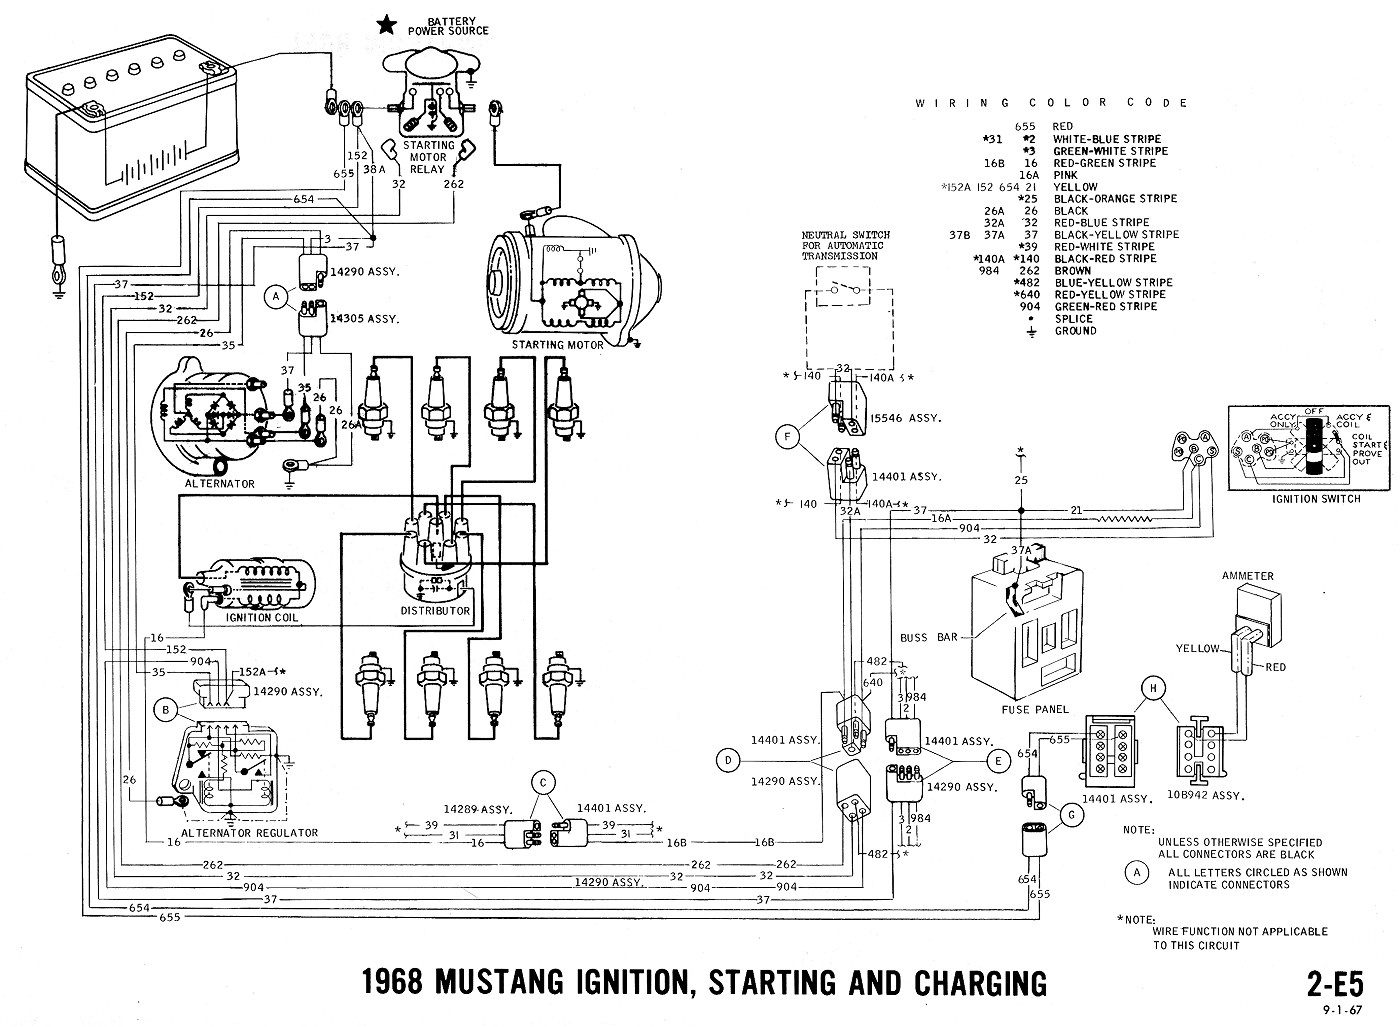 1968 Mustang Wiring Diagrams on 99 s10 vacuum hose schematic